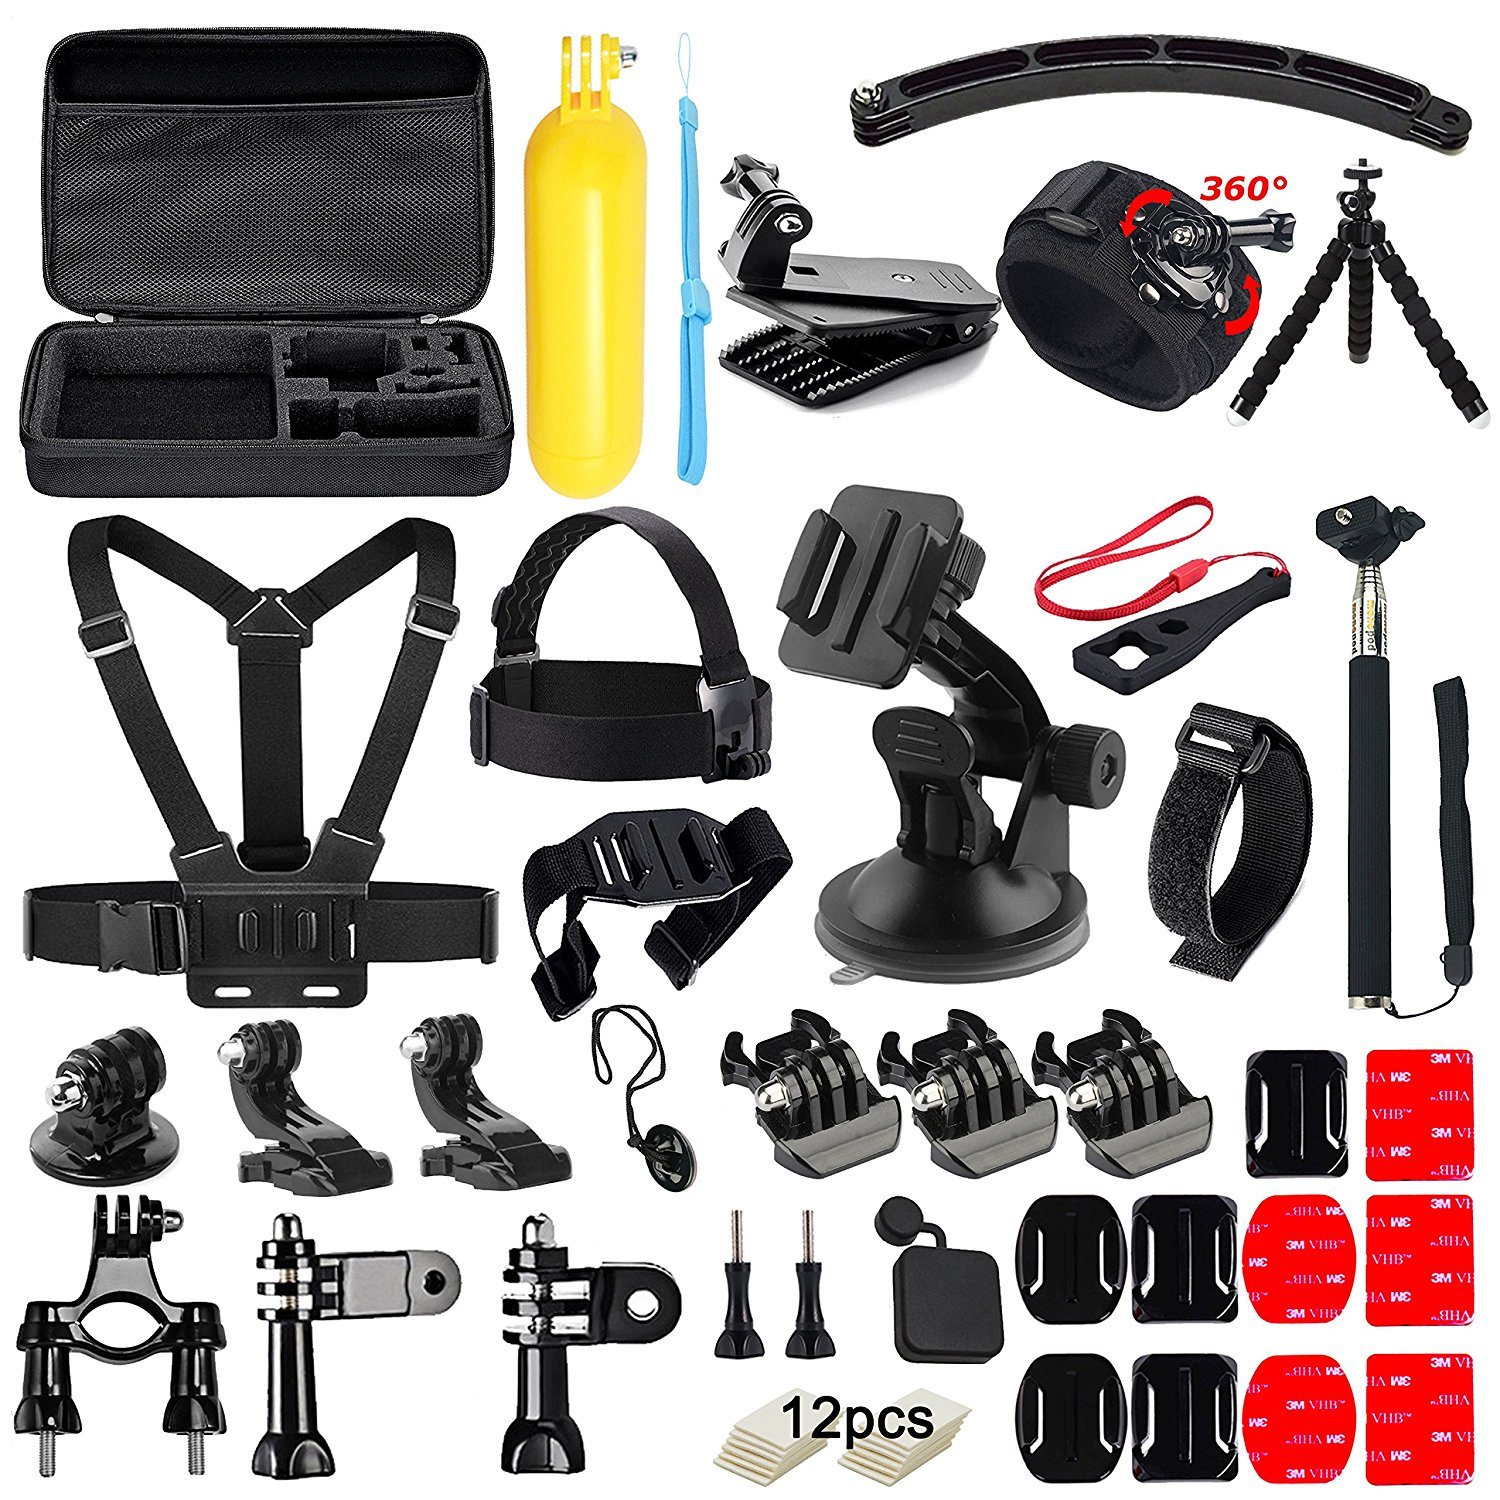 Galleria fotografica FeoconT 50 in1 Action Camera Accessories Kit for GoPro Hero 5 4 3+ 3 2 1 with Carrying Case/Chest Strap/Octopus Tripod